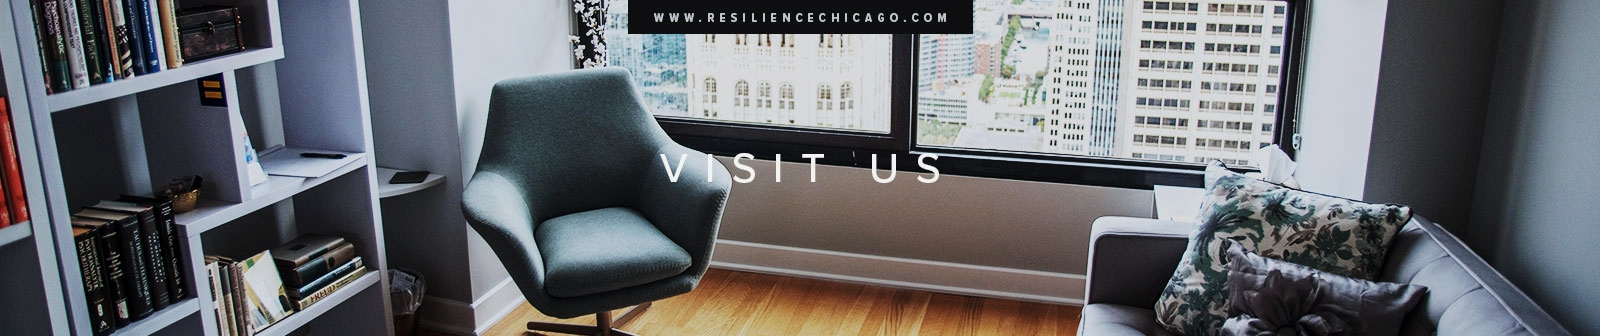 Resilience Psychological Services / Chicago / Visit Us